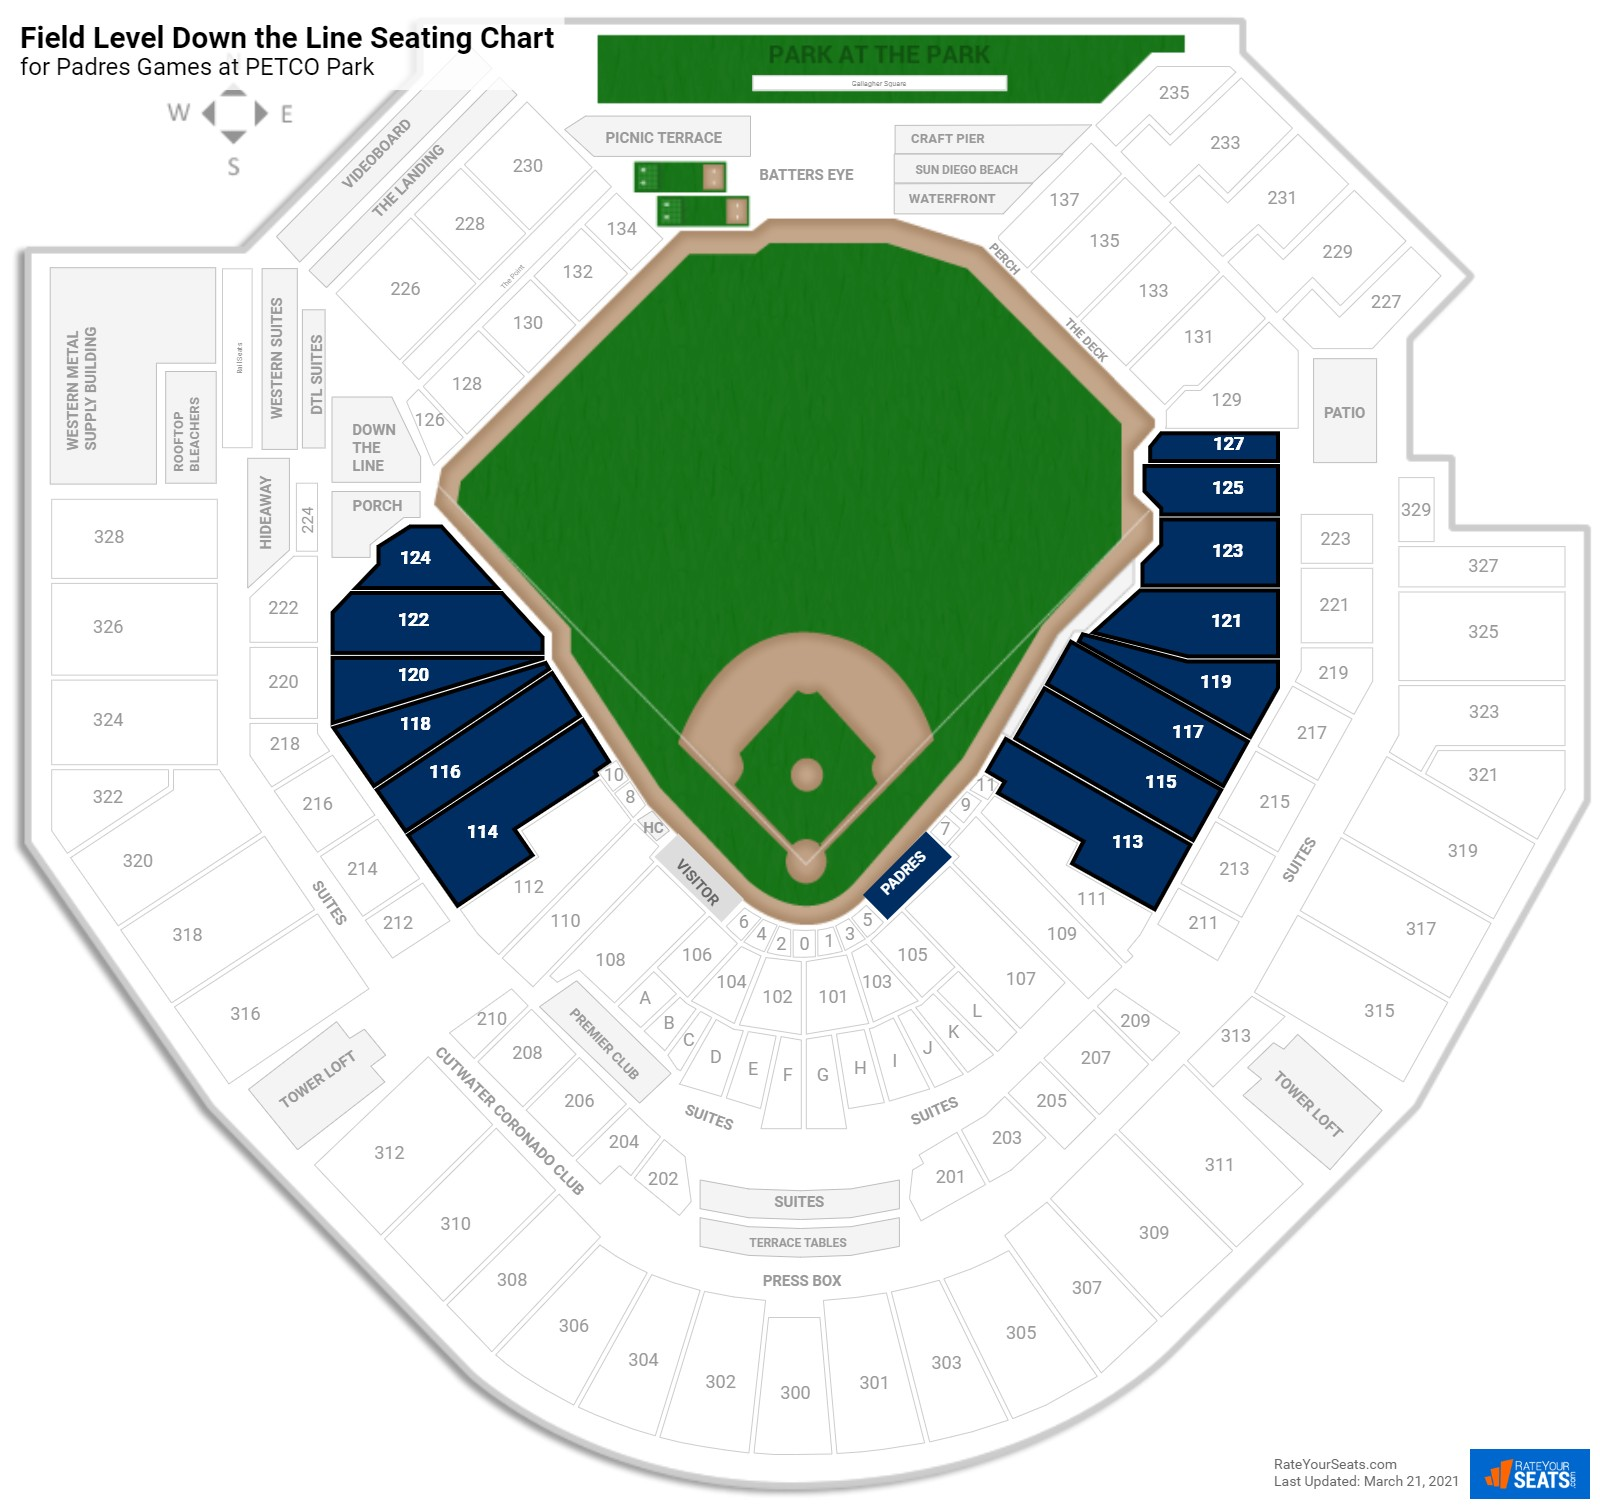 PETCO Park Field Level Down the Line seating chart